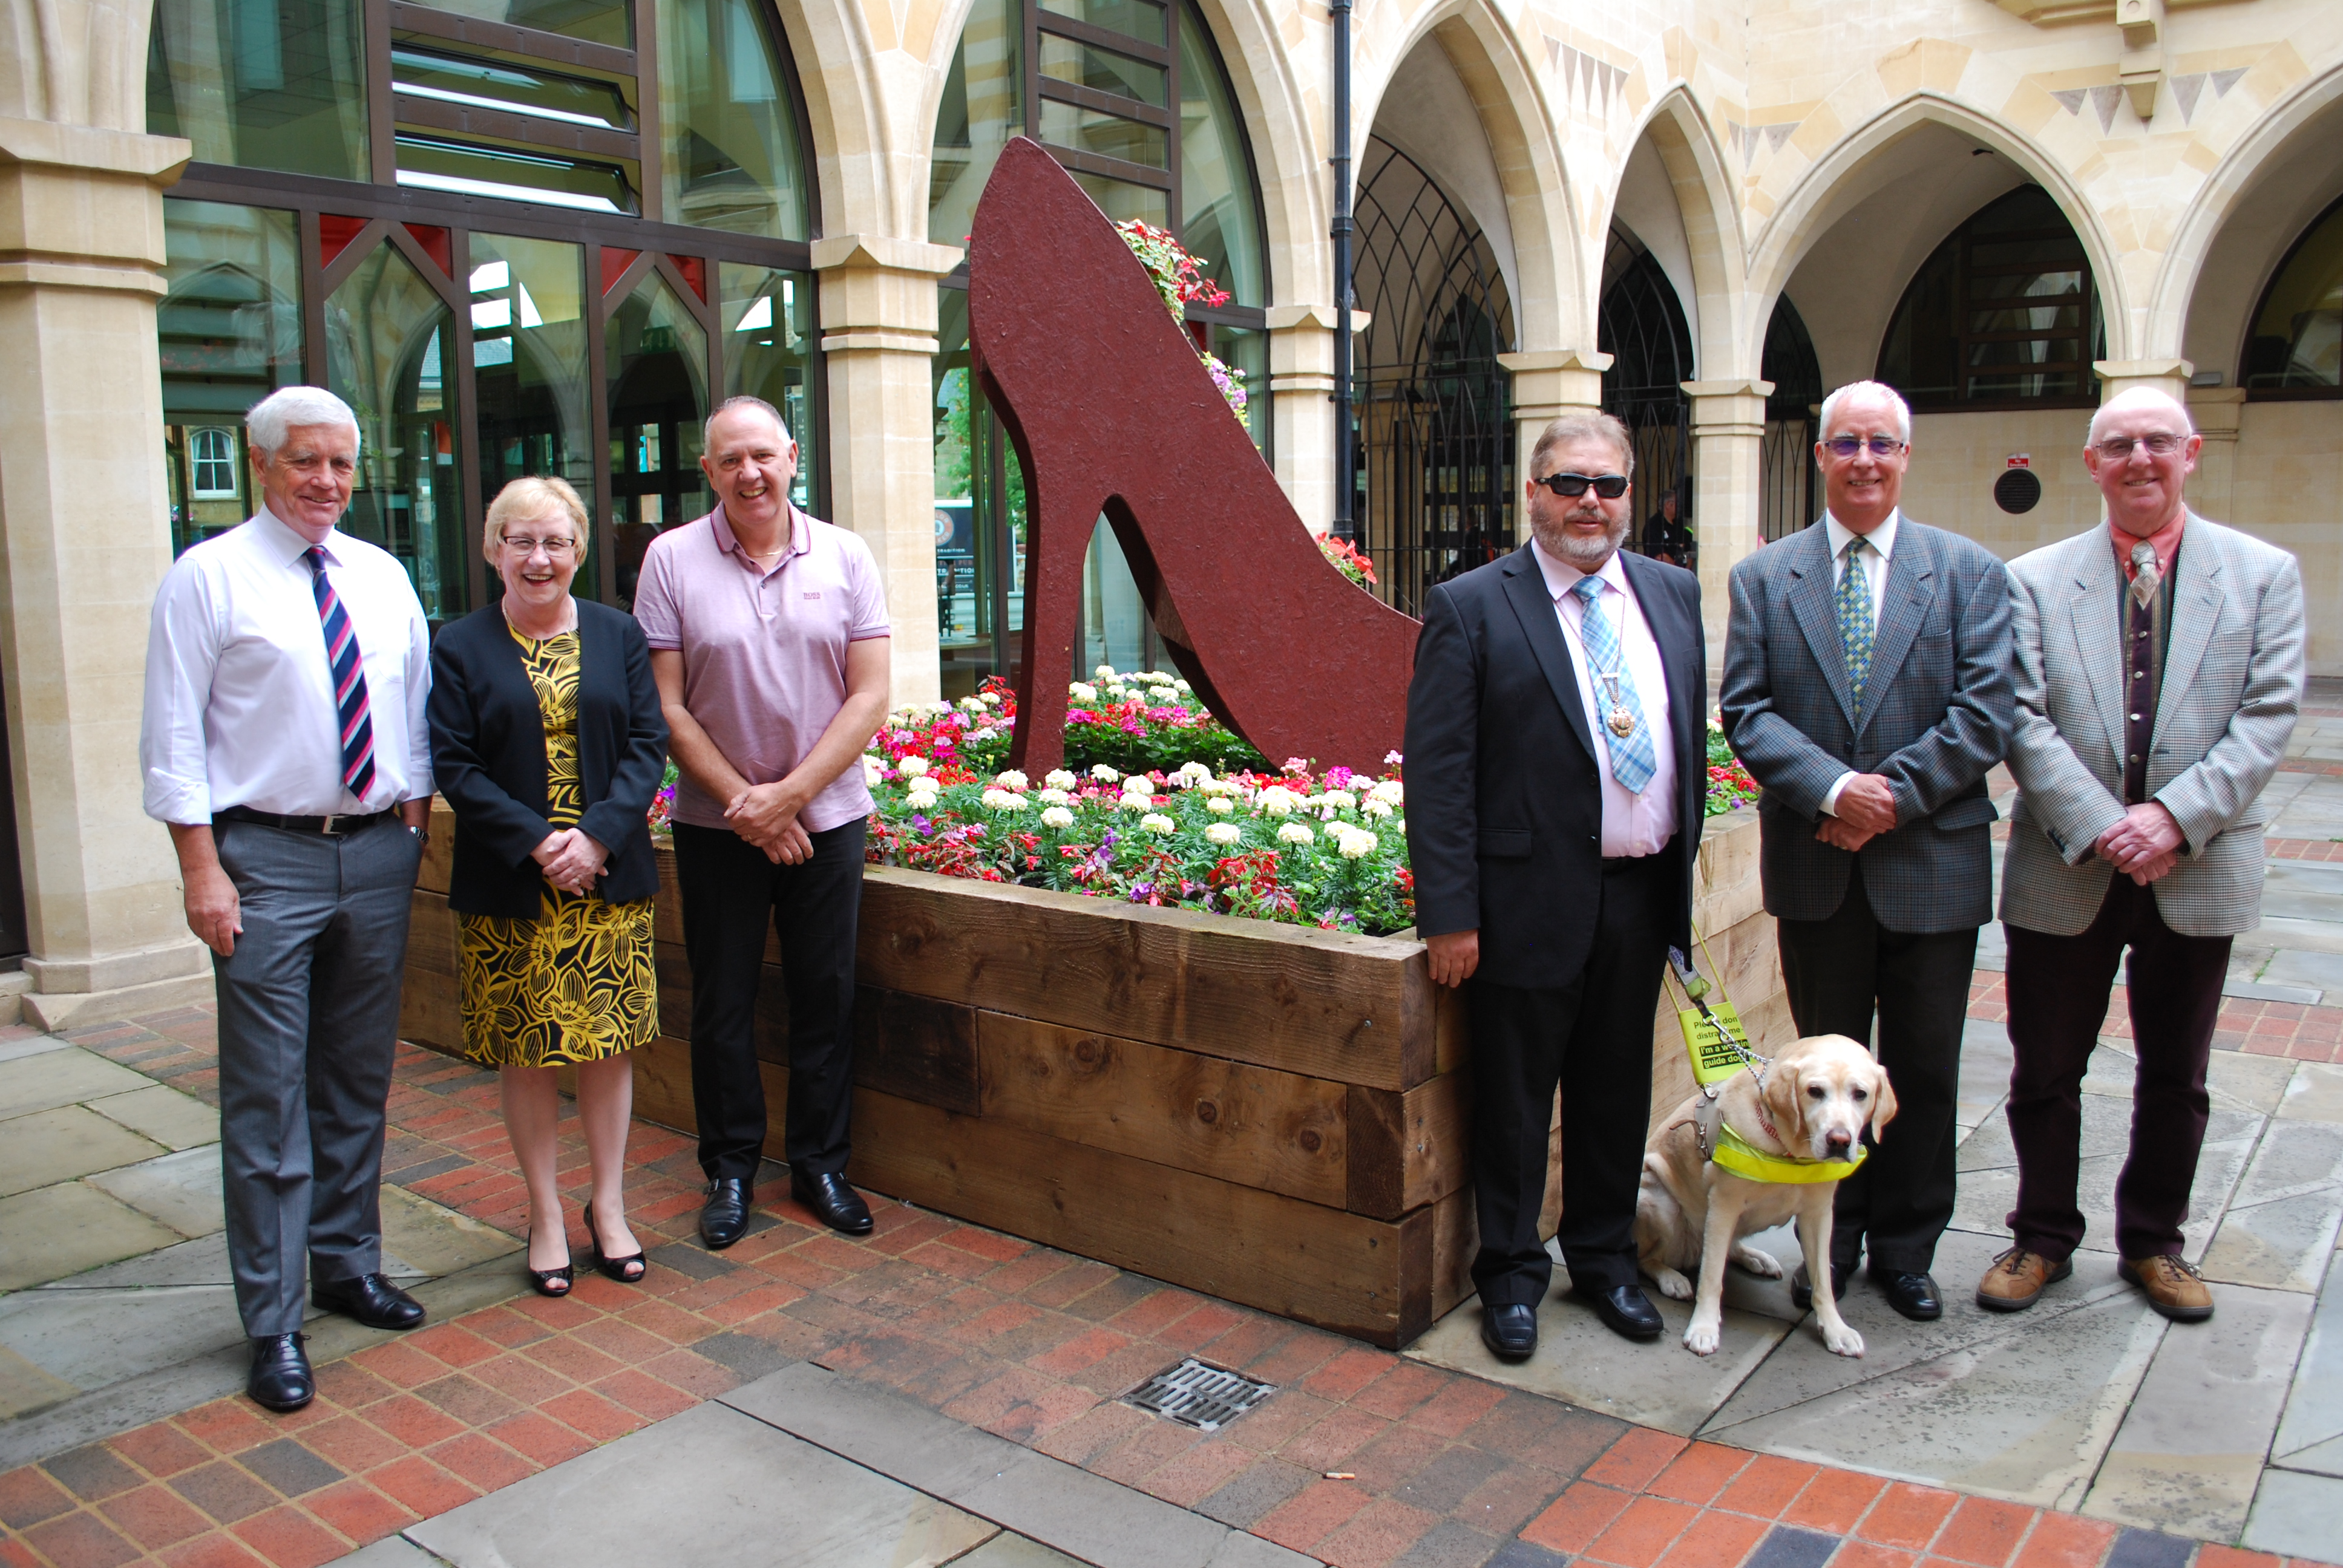 Councillors and judges by The Guildhall floral shoe display